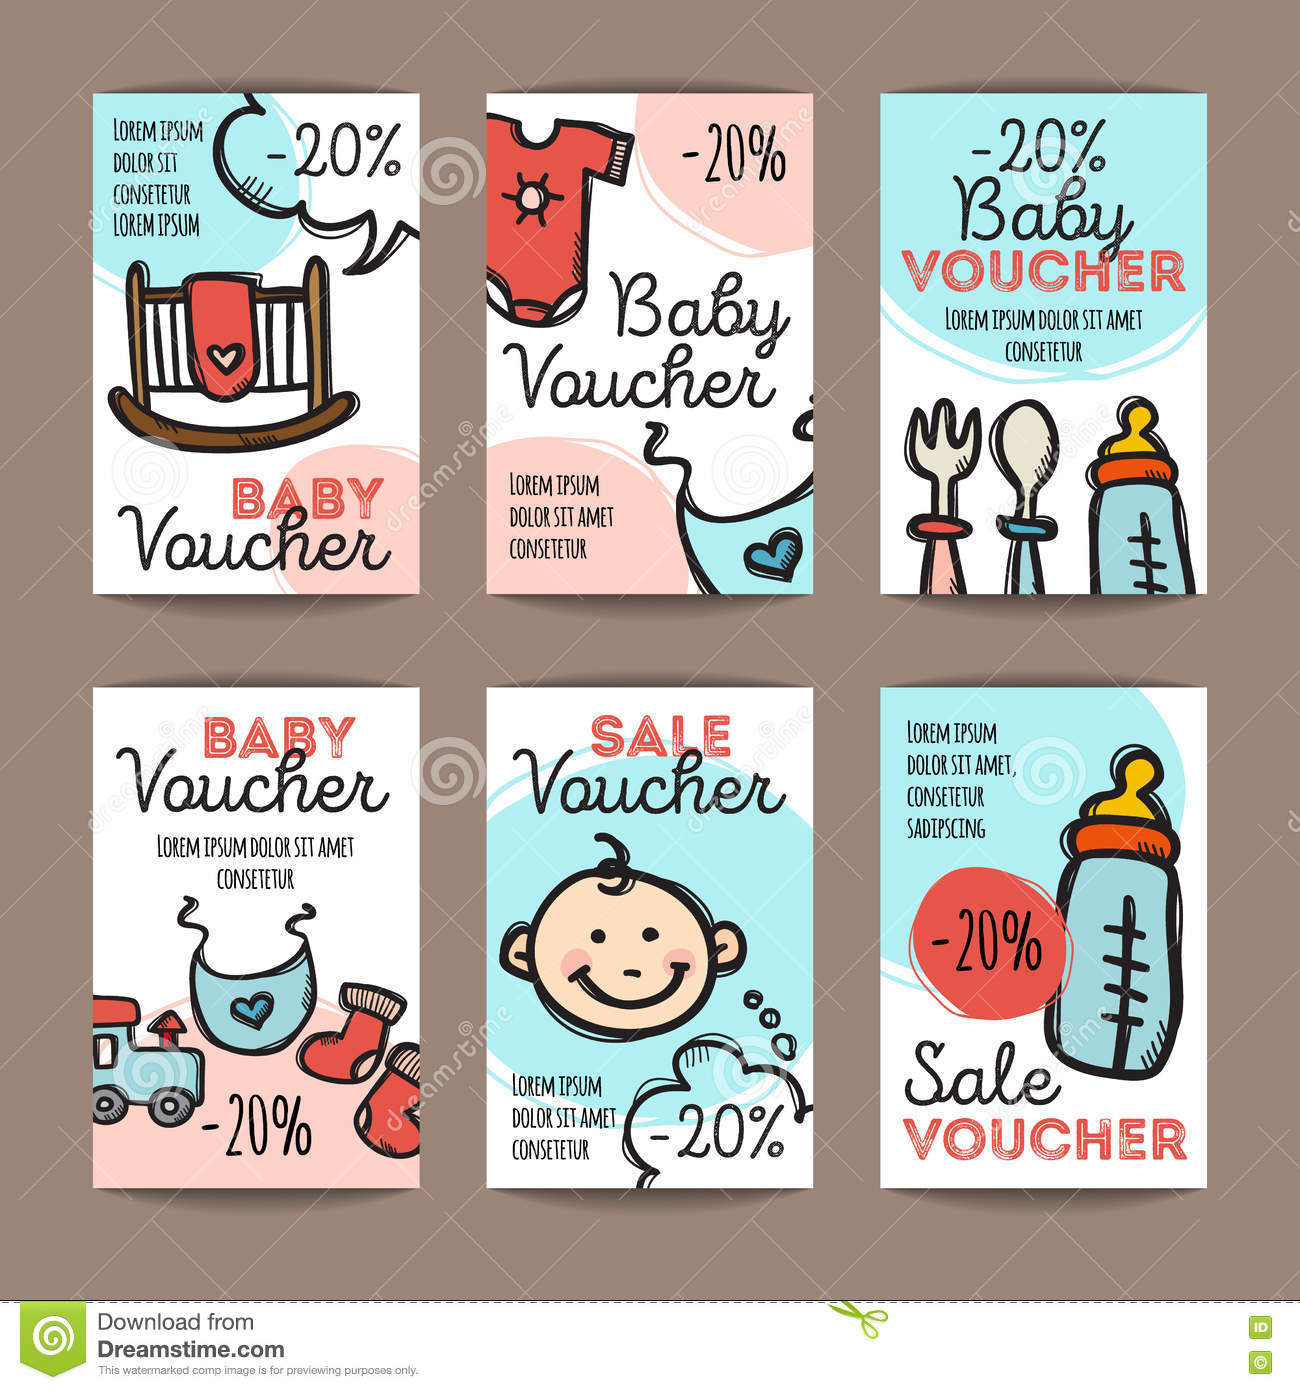 Vector set of discount coupons for baby goods colorful doodle style voucher templates baby - Houseplanscom discount code set ...